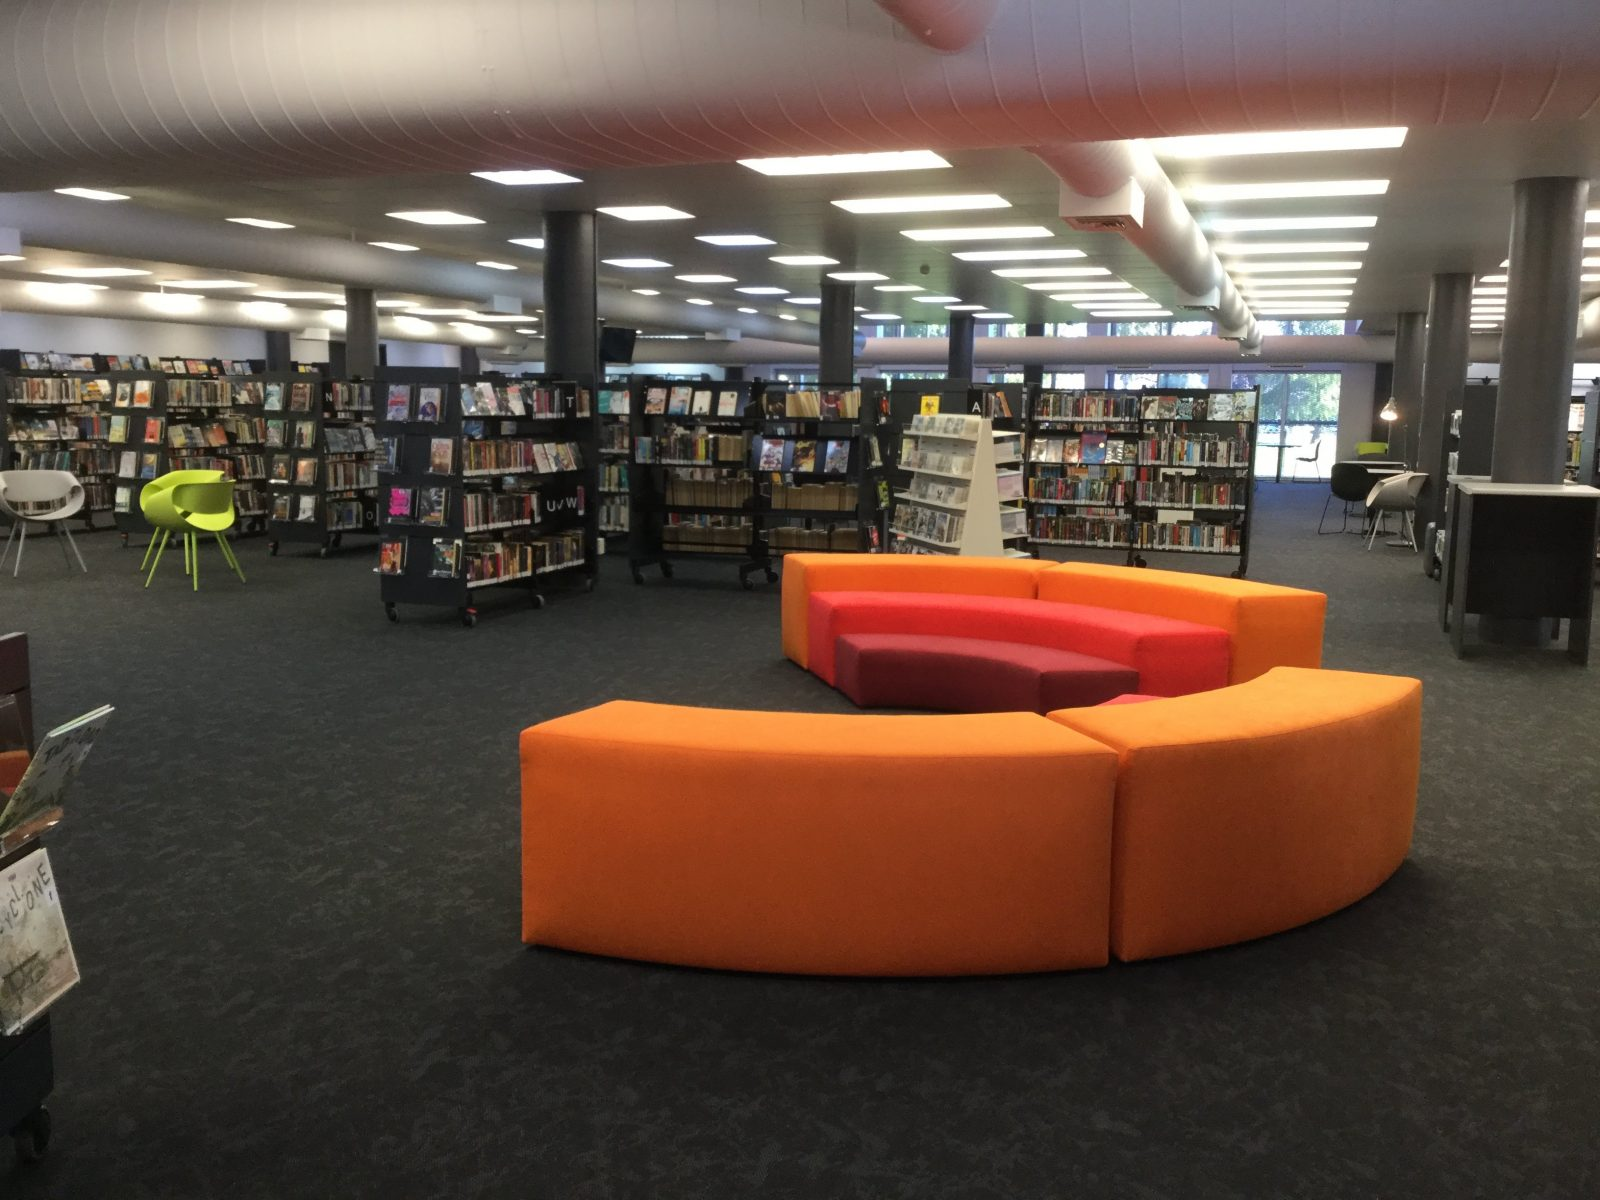 Brightly coloured lounge in the foreground with books on shelving behind it.